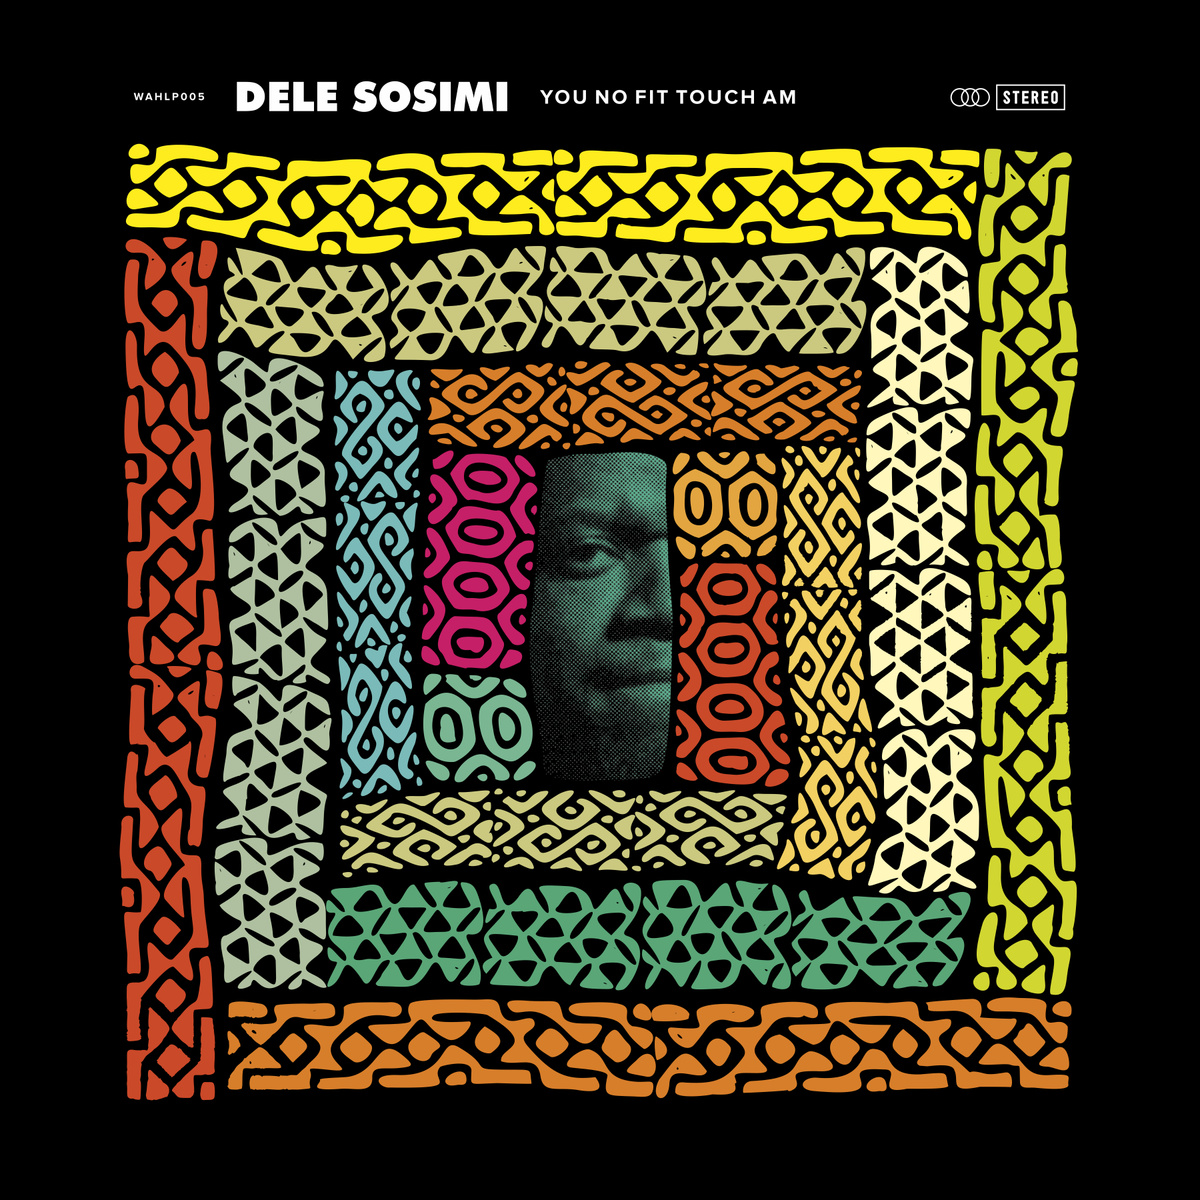 Dele Sosimi - You No Fit Touch Am